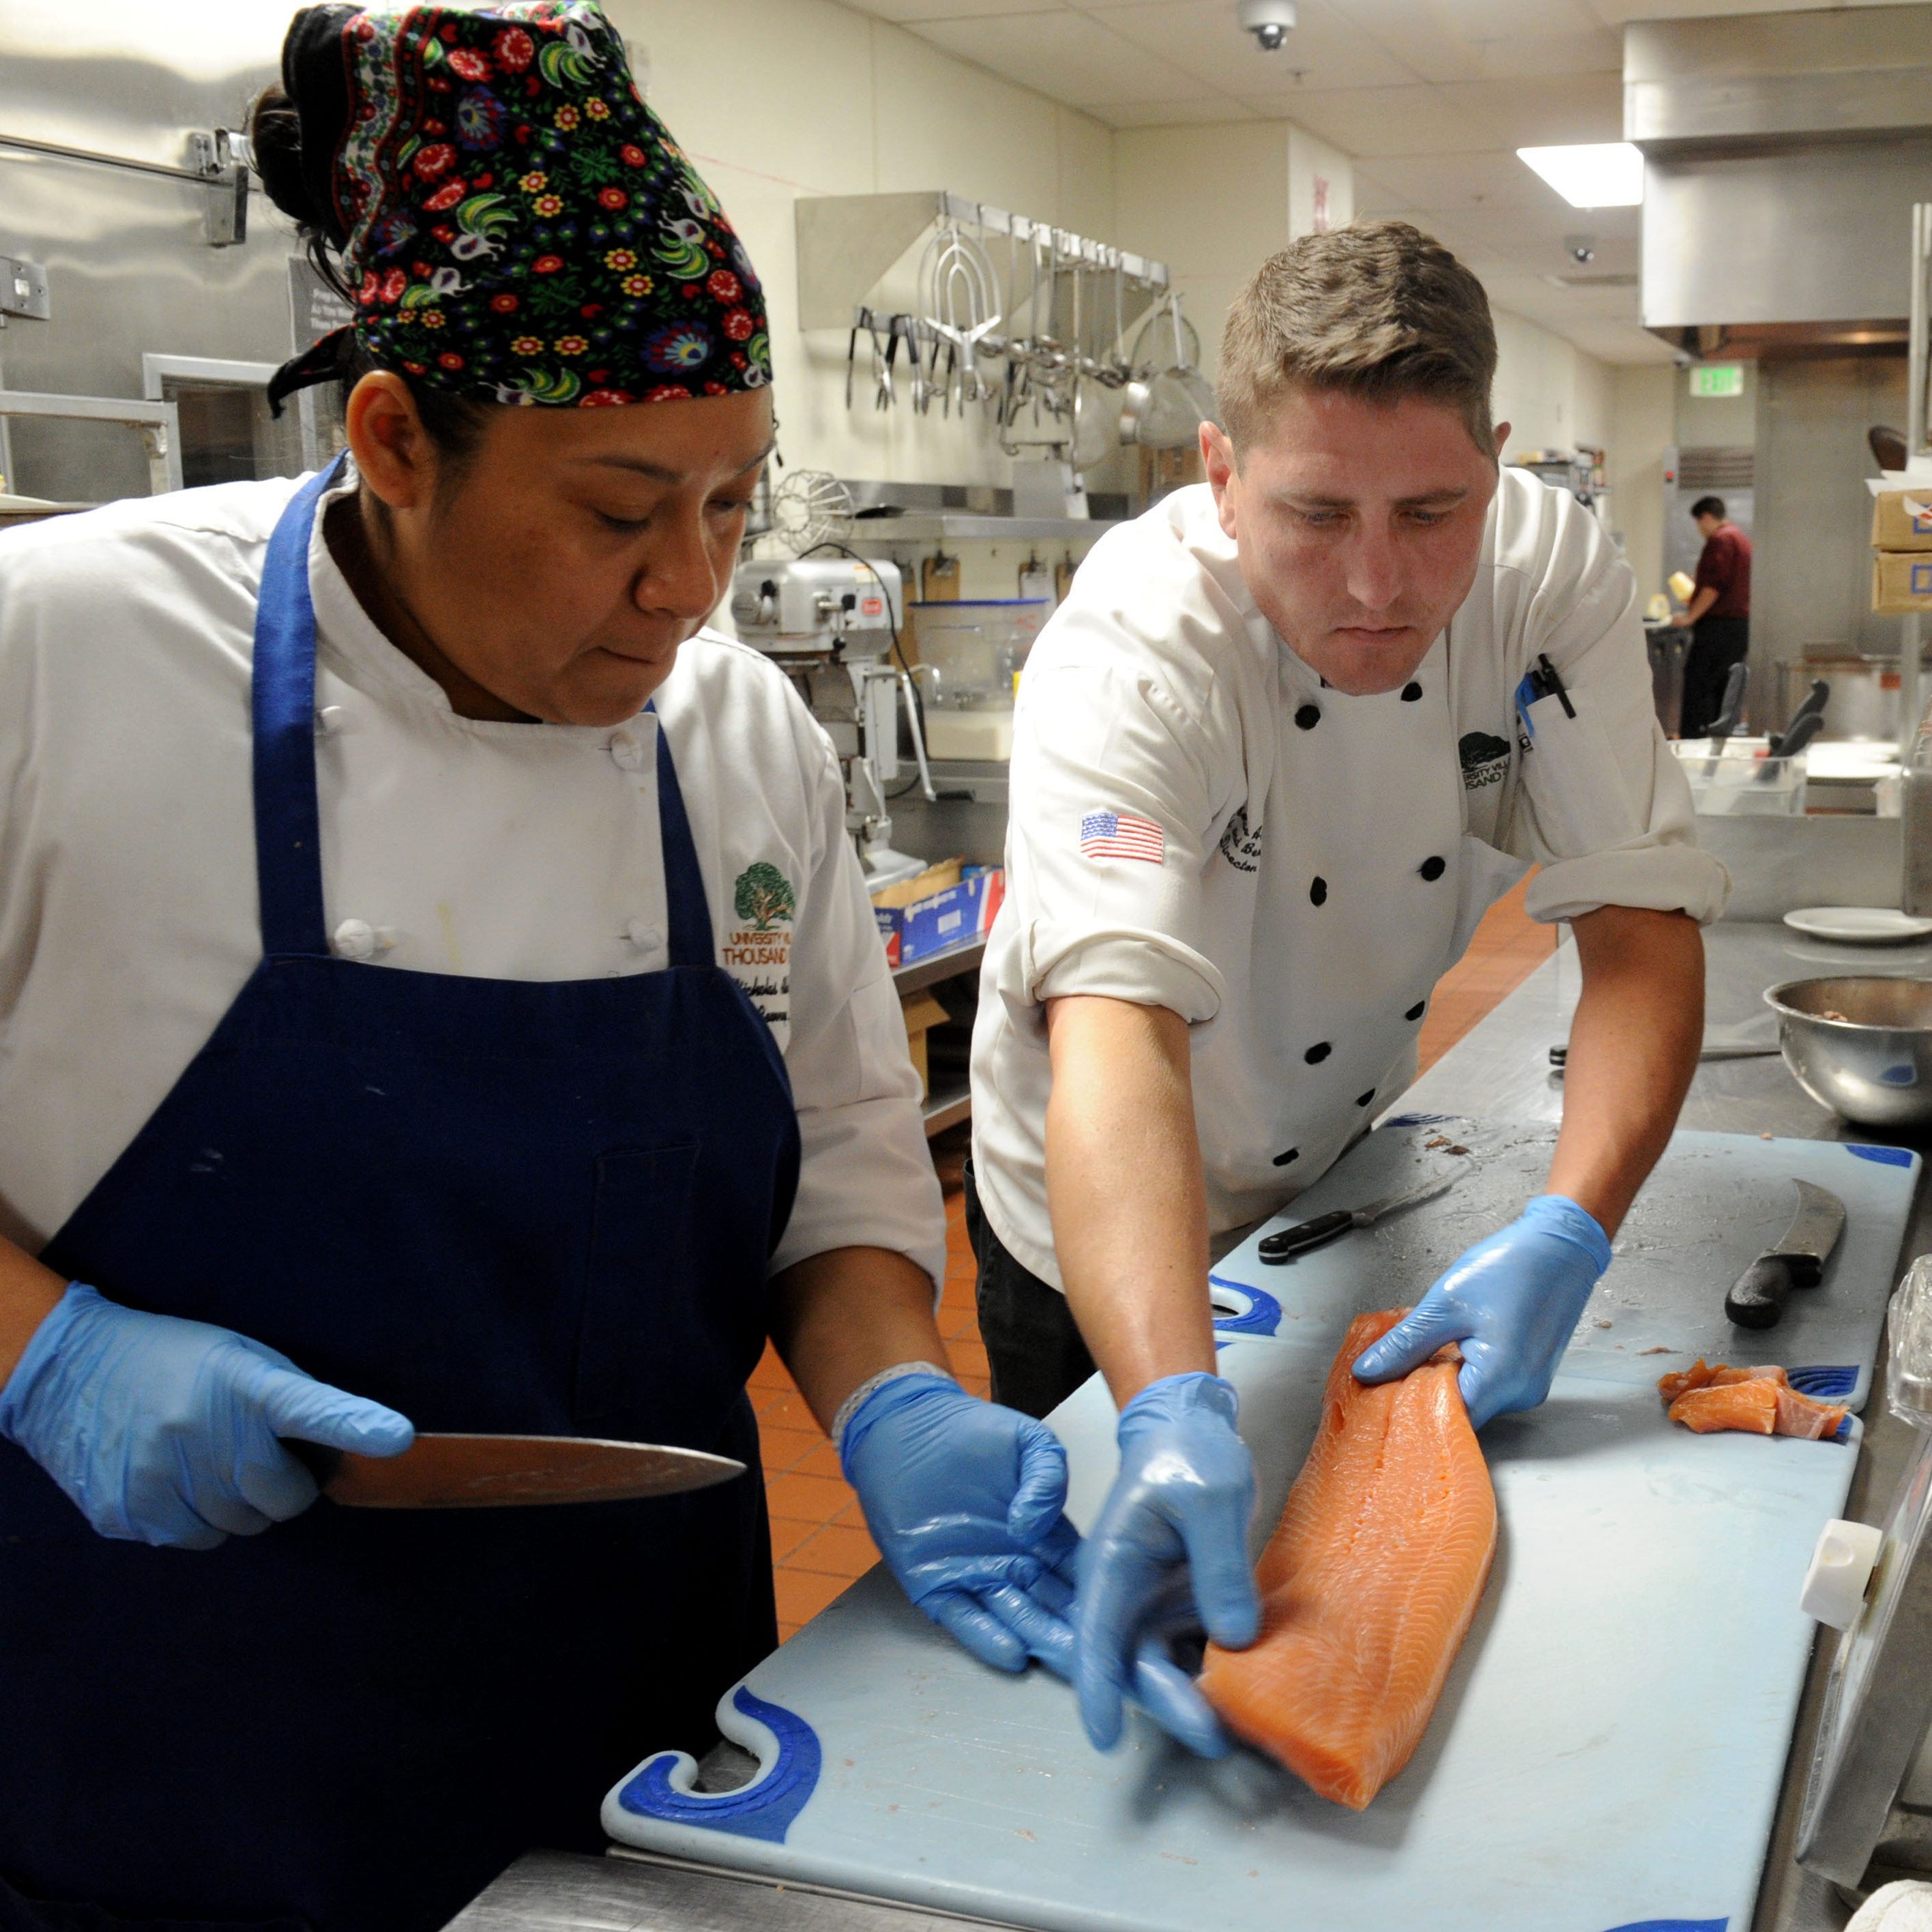 Cafe Society: Thousand Oaks chef makes comeback after brain injury